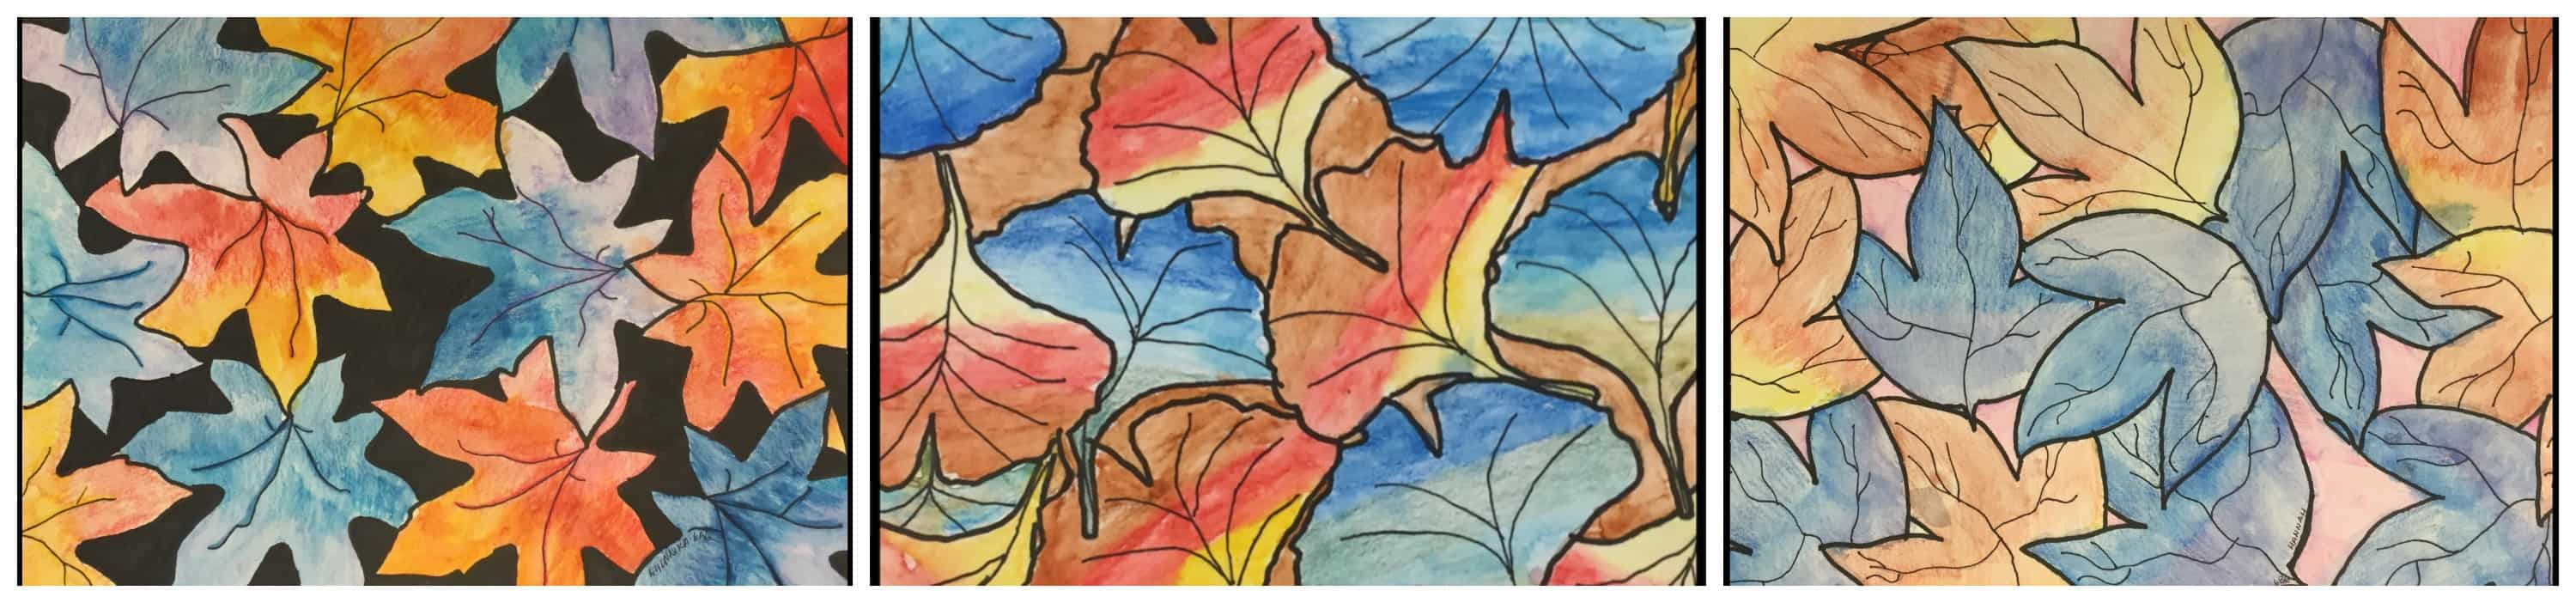 Leaf artworks by Walker students